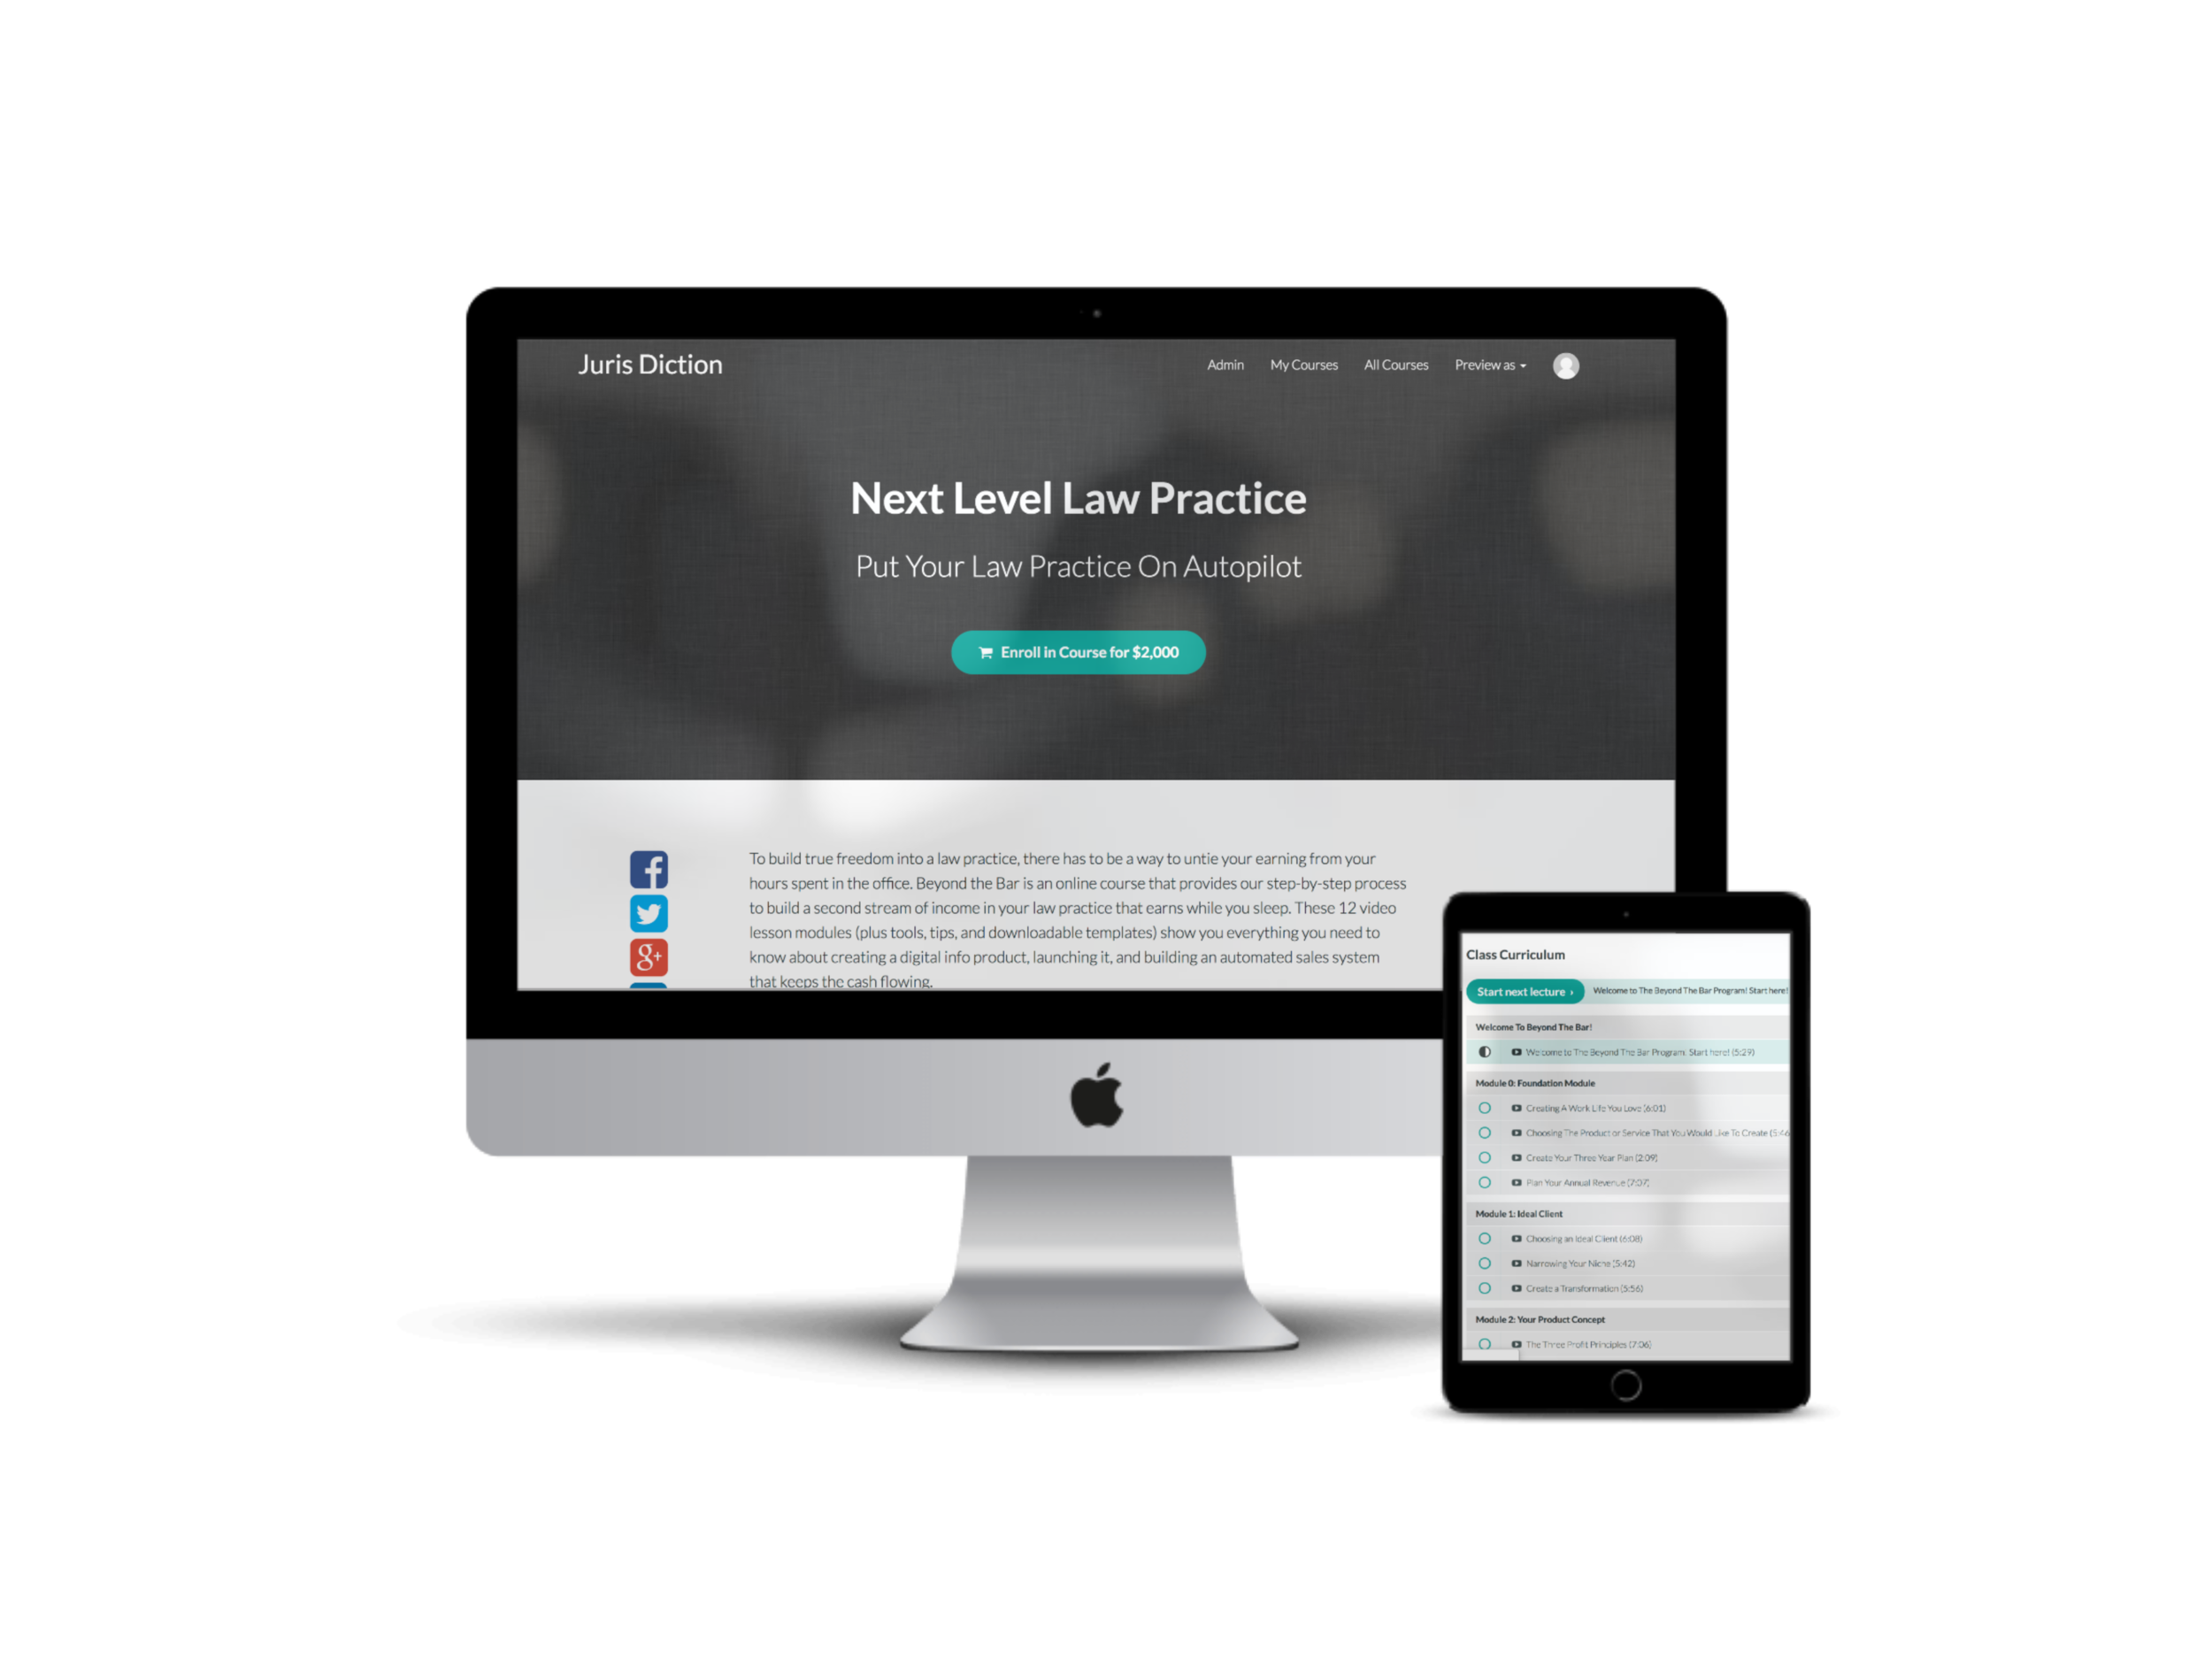 Next Level Law Practice - NLLP is all about creating a Sustainable Law Practice. We teach you how to create super systems that automate up to 80% of your practice, giving you more time to do the work you love. Nine video modules (including valuable workbooks, spreadsheets, and tools), create a streamlined practice that runs smoothly, efficiently, and — most importantly — profitably.